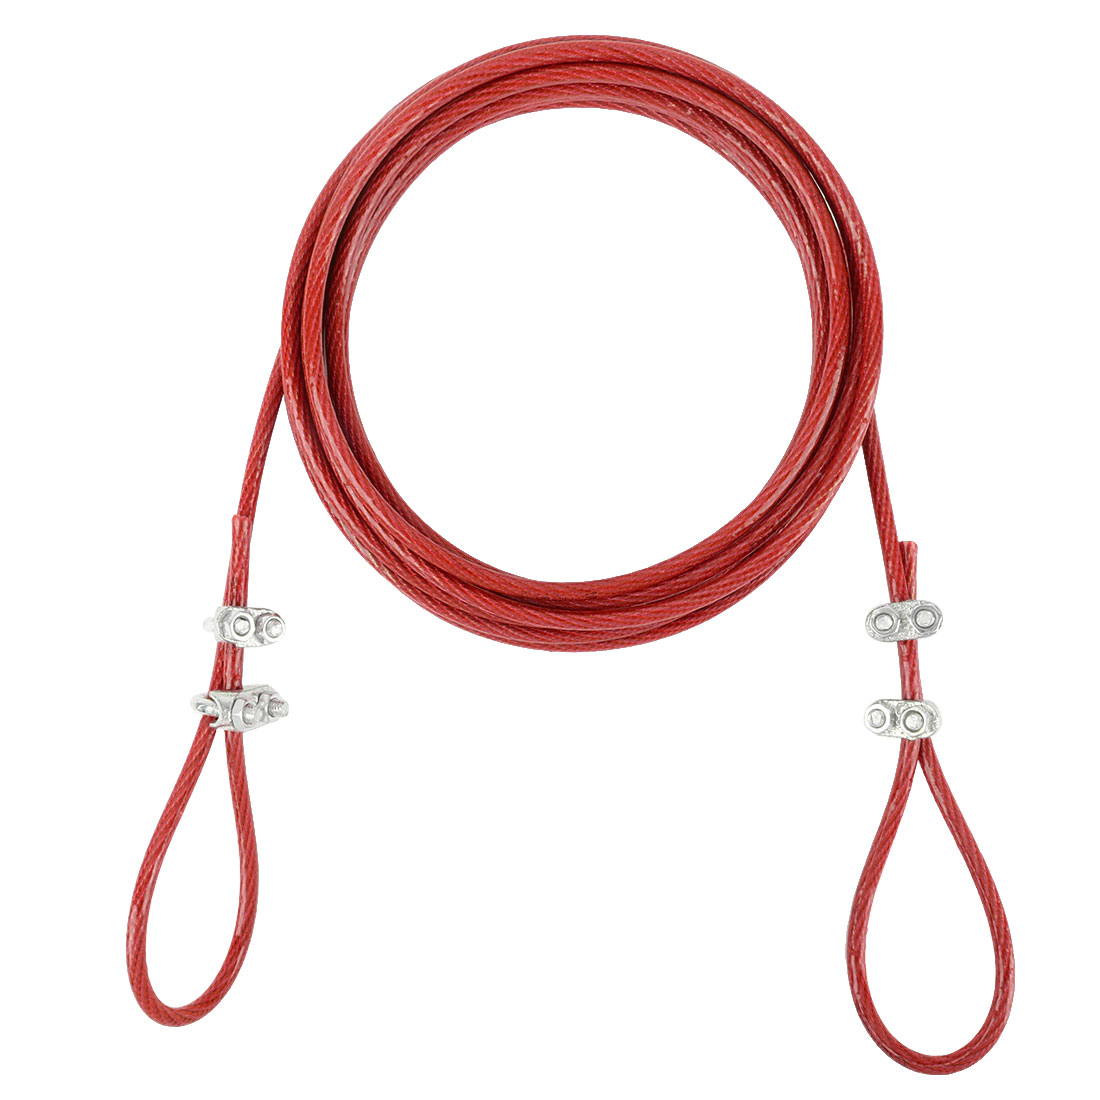 Steel Cored Clothesline Hold up Heavy Weight Nylon Wrapped Red 5 Meters Length